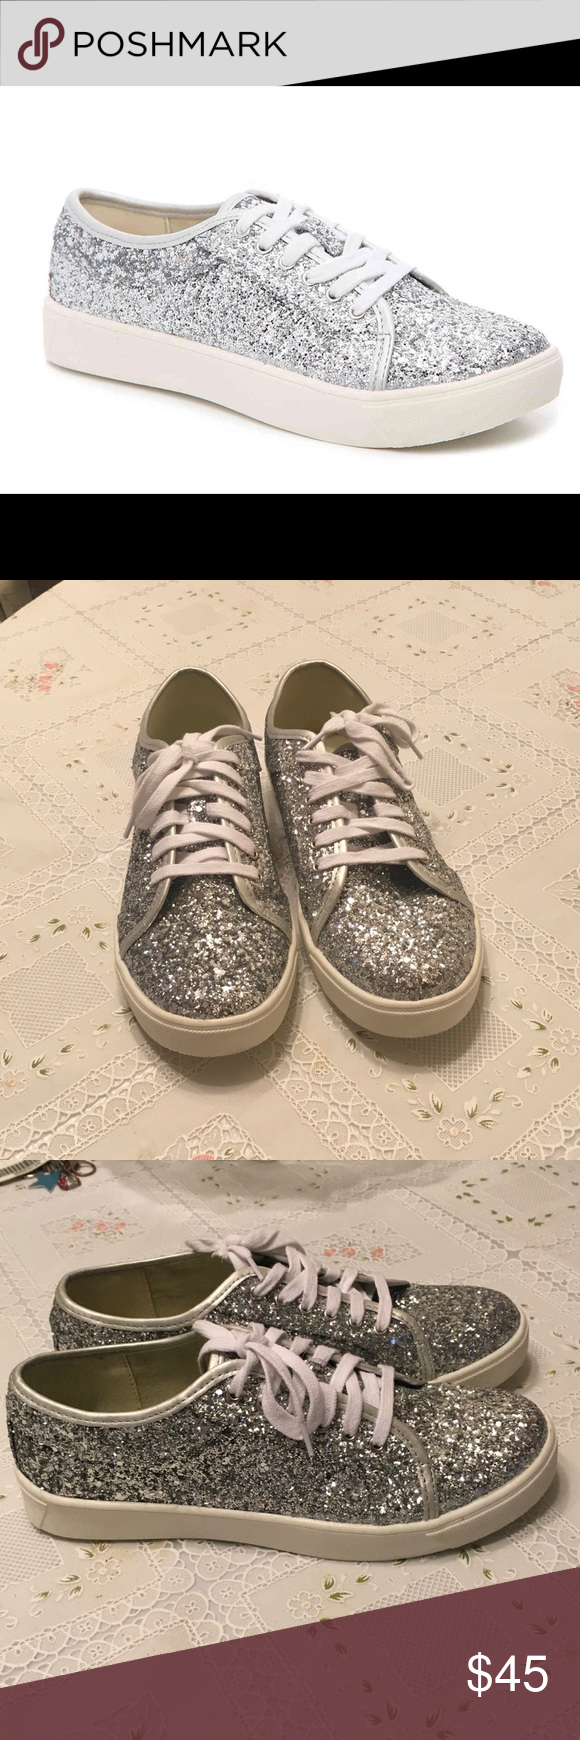 Dirty Laundry Silver Sneakers Brand New Never Worn Other Than